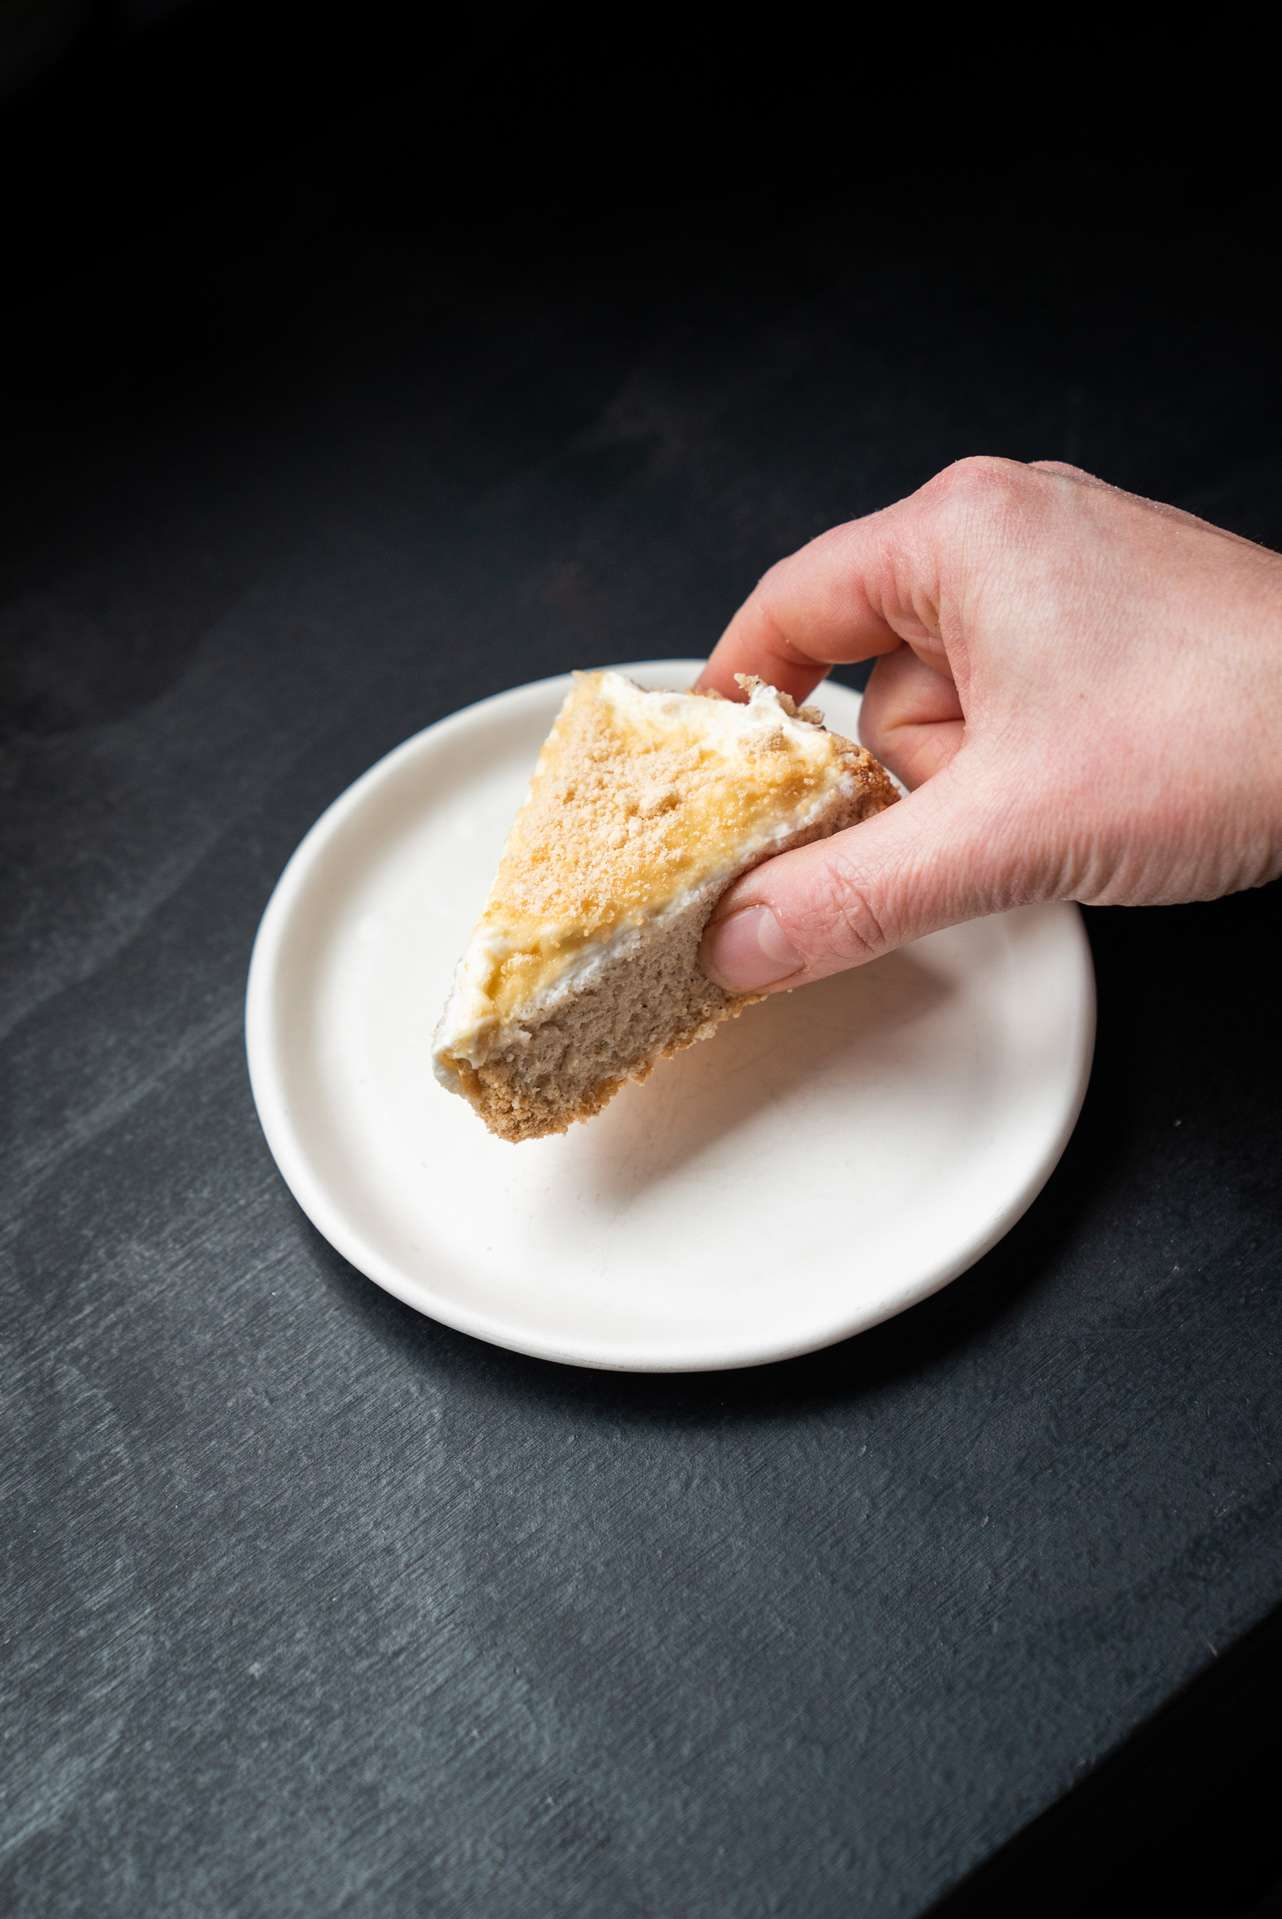 picture of chef Stephanie Labelle from pastry shop Rhubarbe childhood dish cake by Bruno Florin